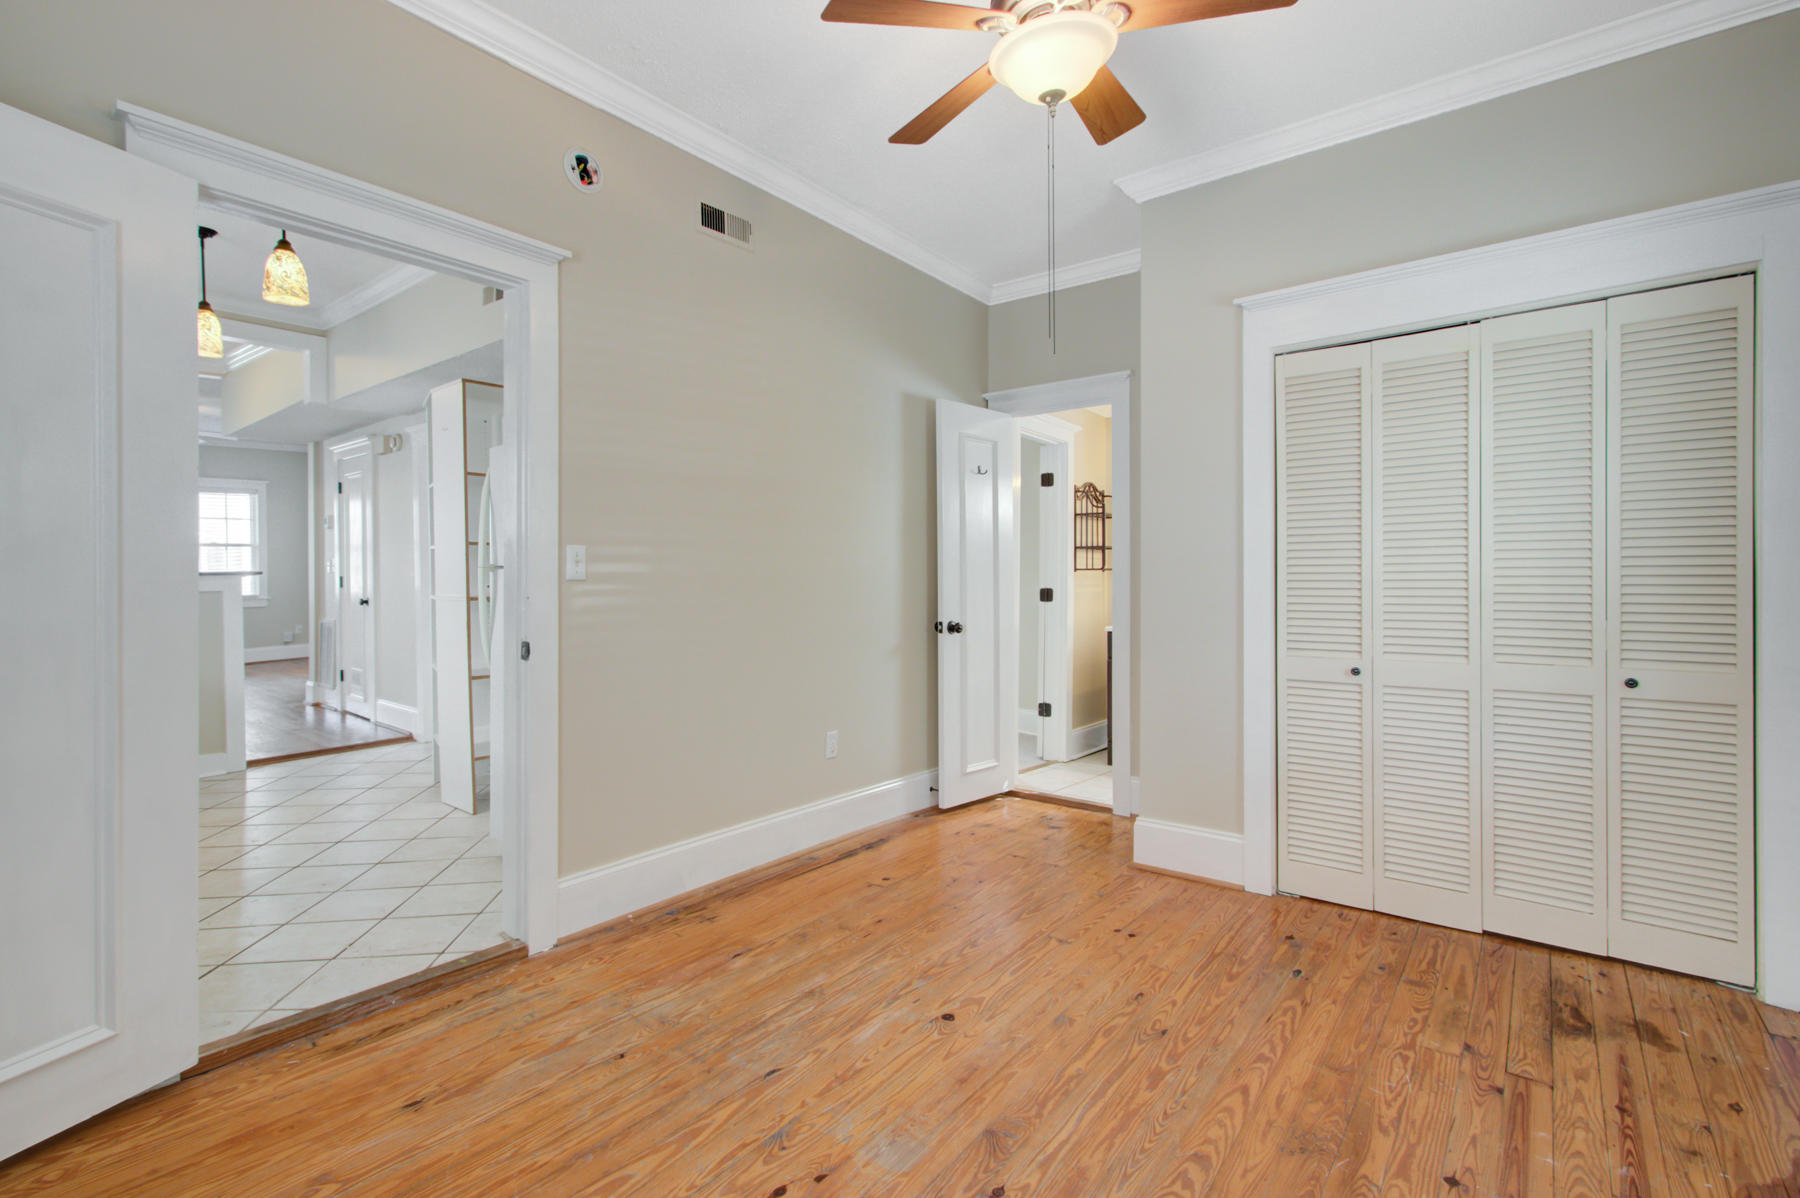 Elliotborough Condos For Sale - 3 Kracke, Charleston, SC - 14